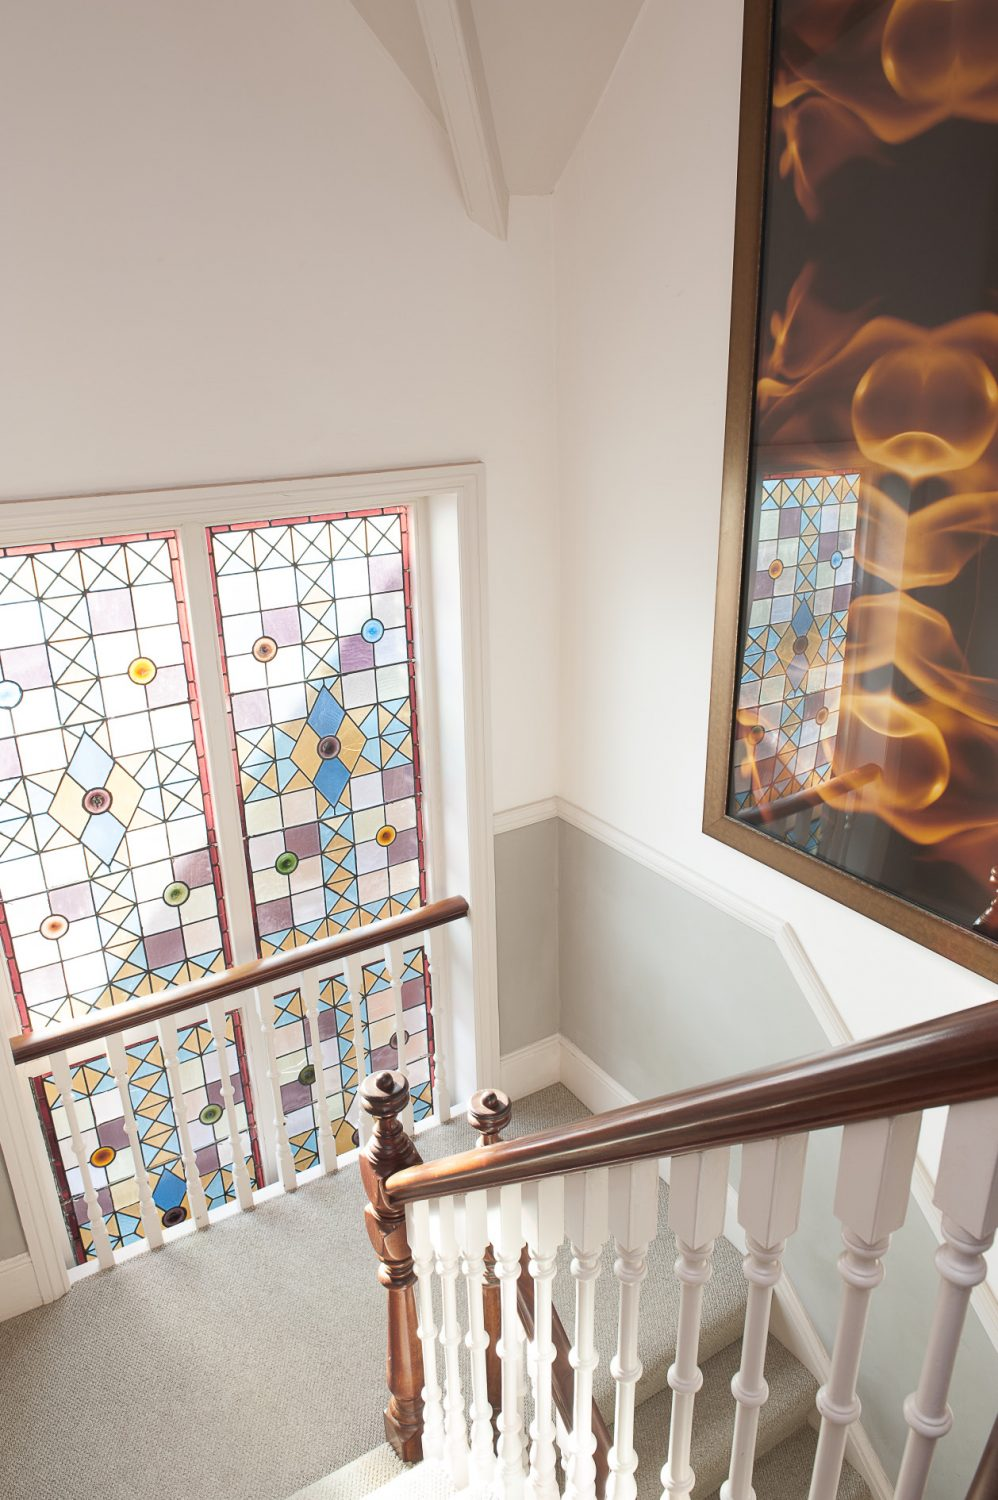 As we climb the stairs we come across a huge photograph of flames, manipulated using Photoshop into a giant fire design. The first room we enter is called Hafez. The room has a tranquil, airy feel and despite the fairly dark coloured walls is flooded by light from the huge bay window...